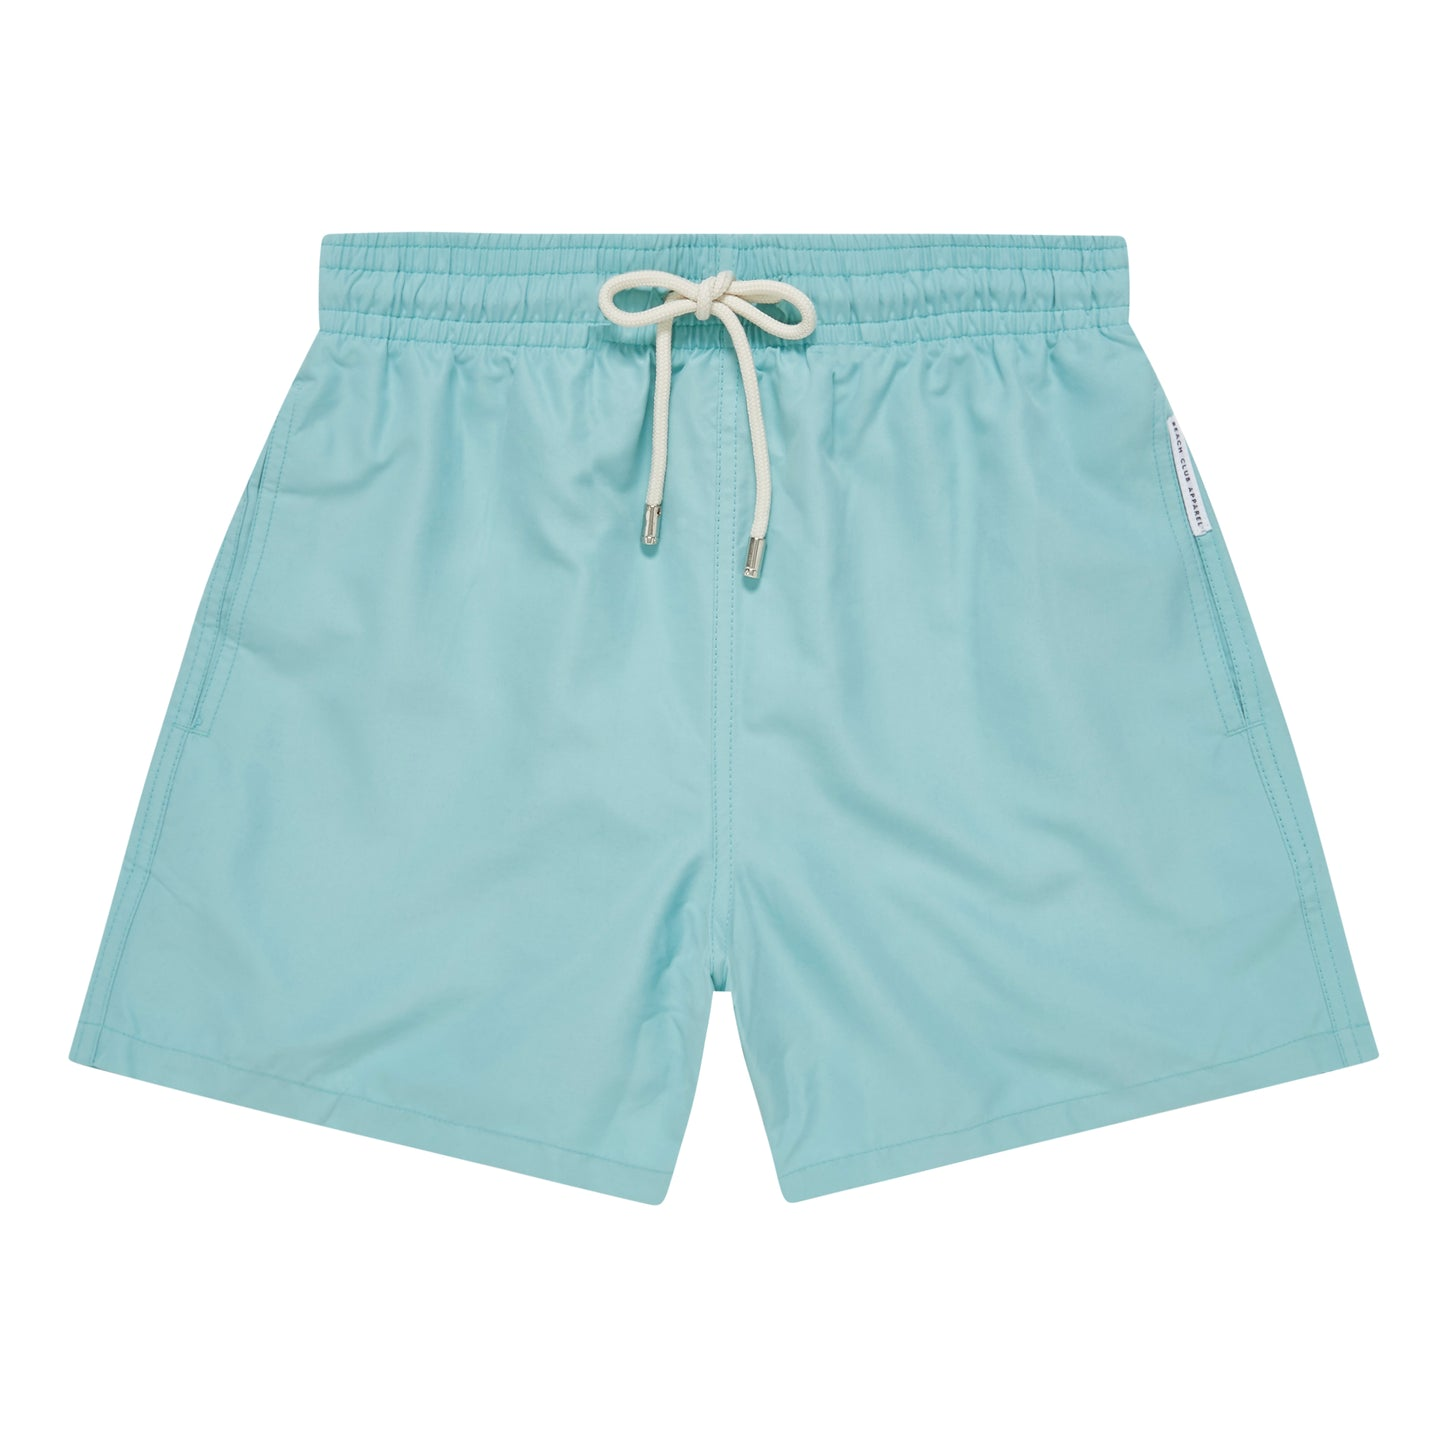 Beach Club Apparel Sea Green (Turquoise) - Union 22